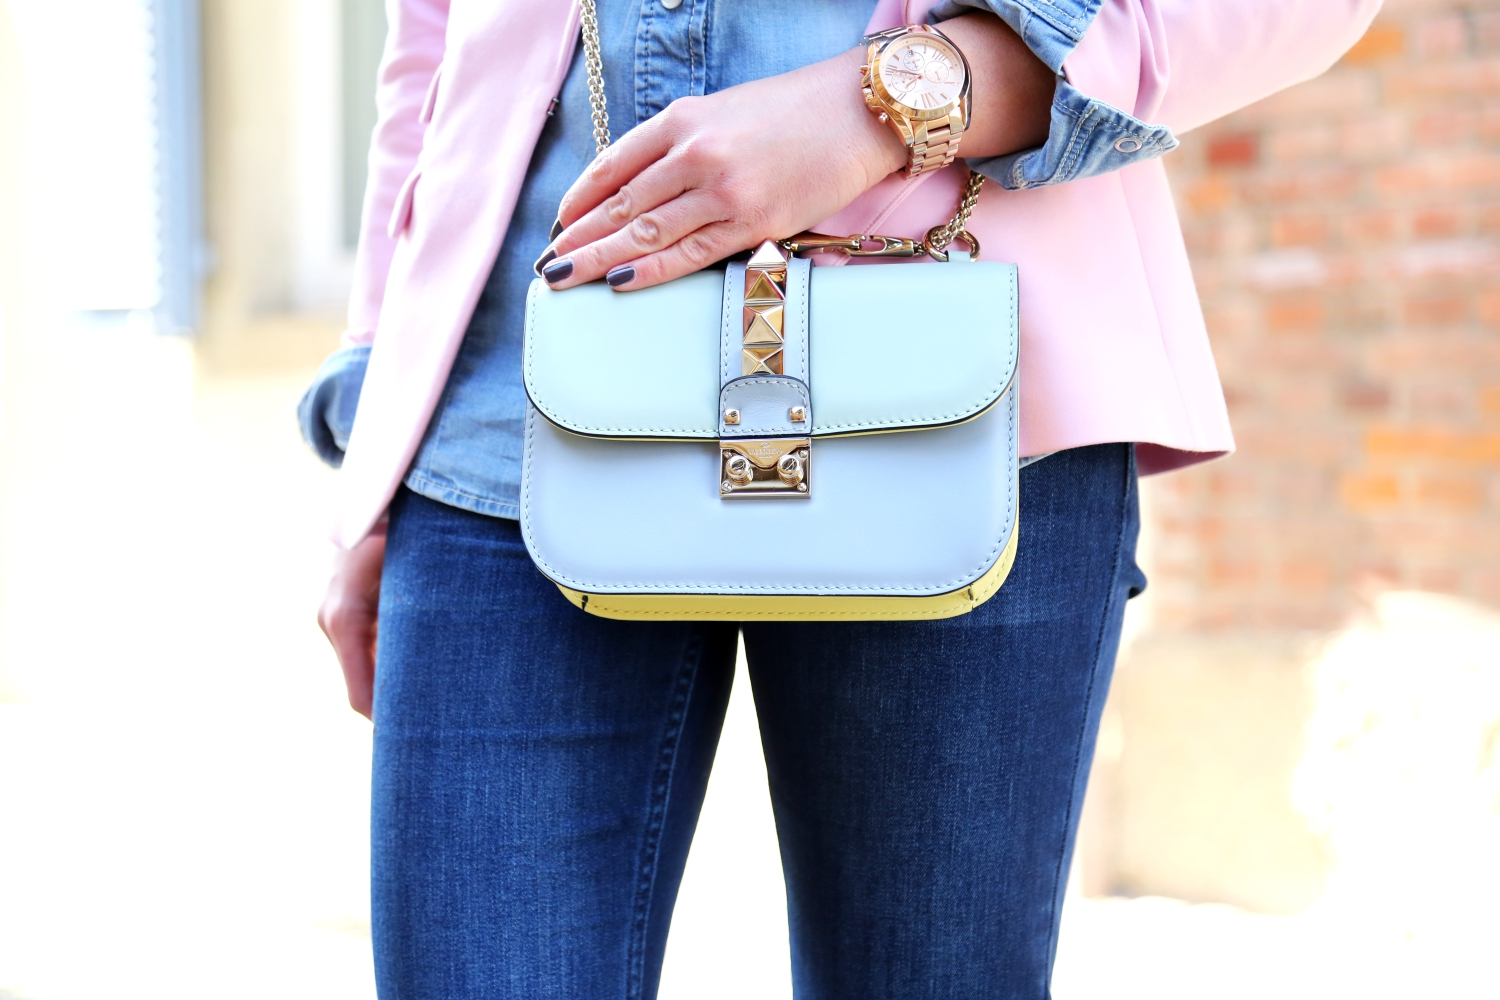 outfit-valentino-garavani-glam-lock-bag-watercolor-pastels-flared-jeans-german-fashionblogger